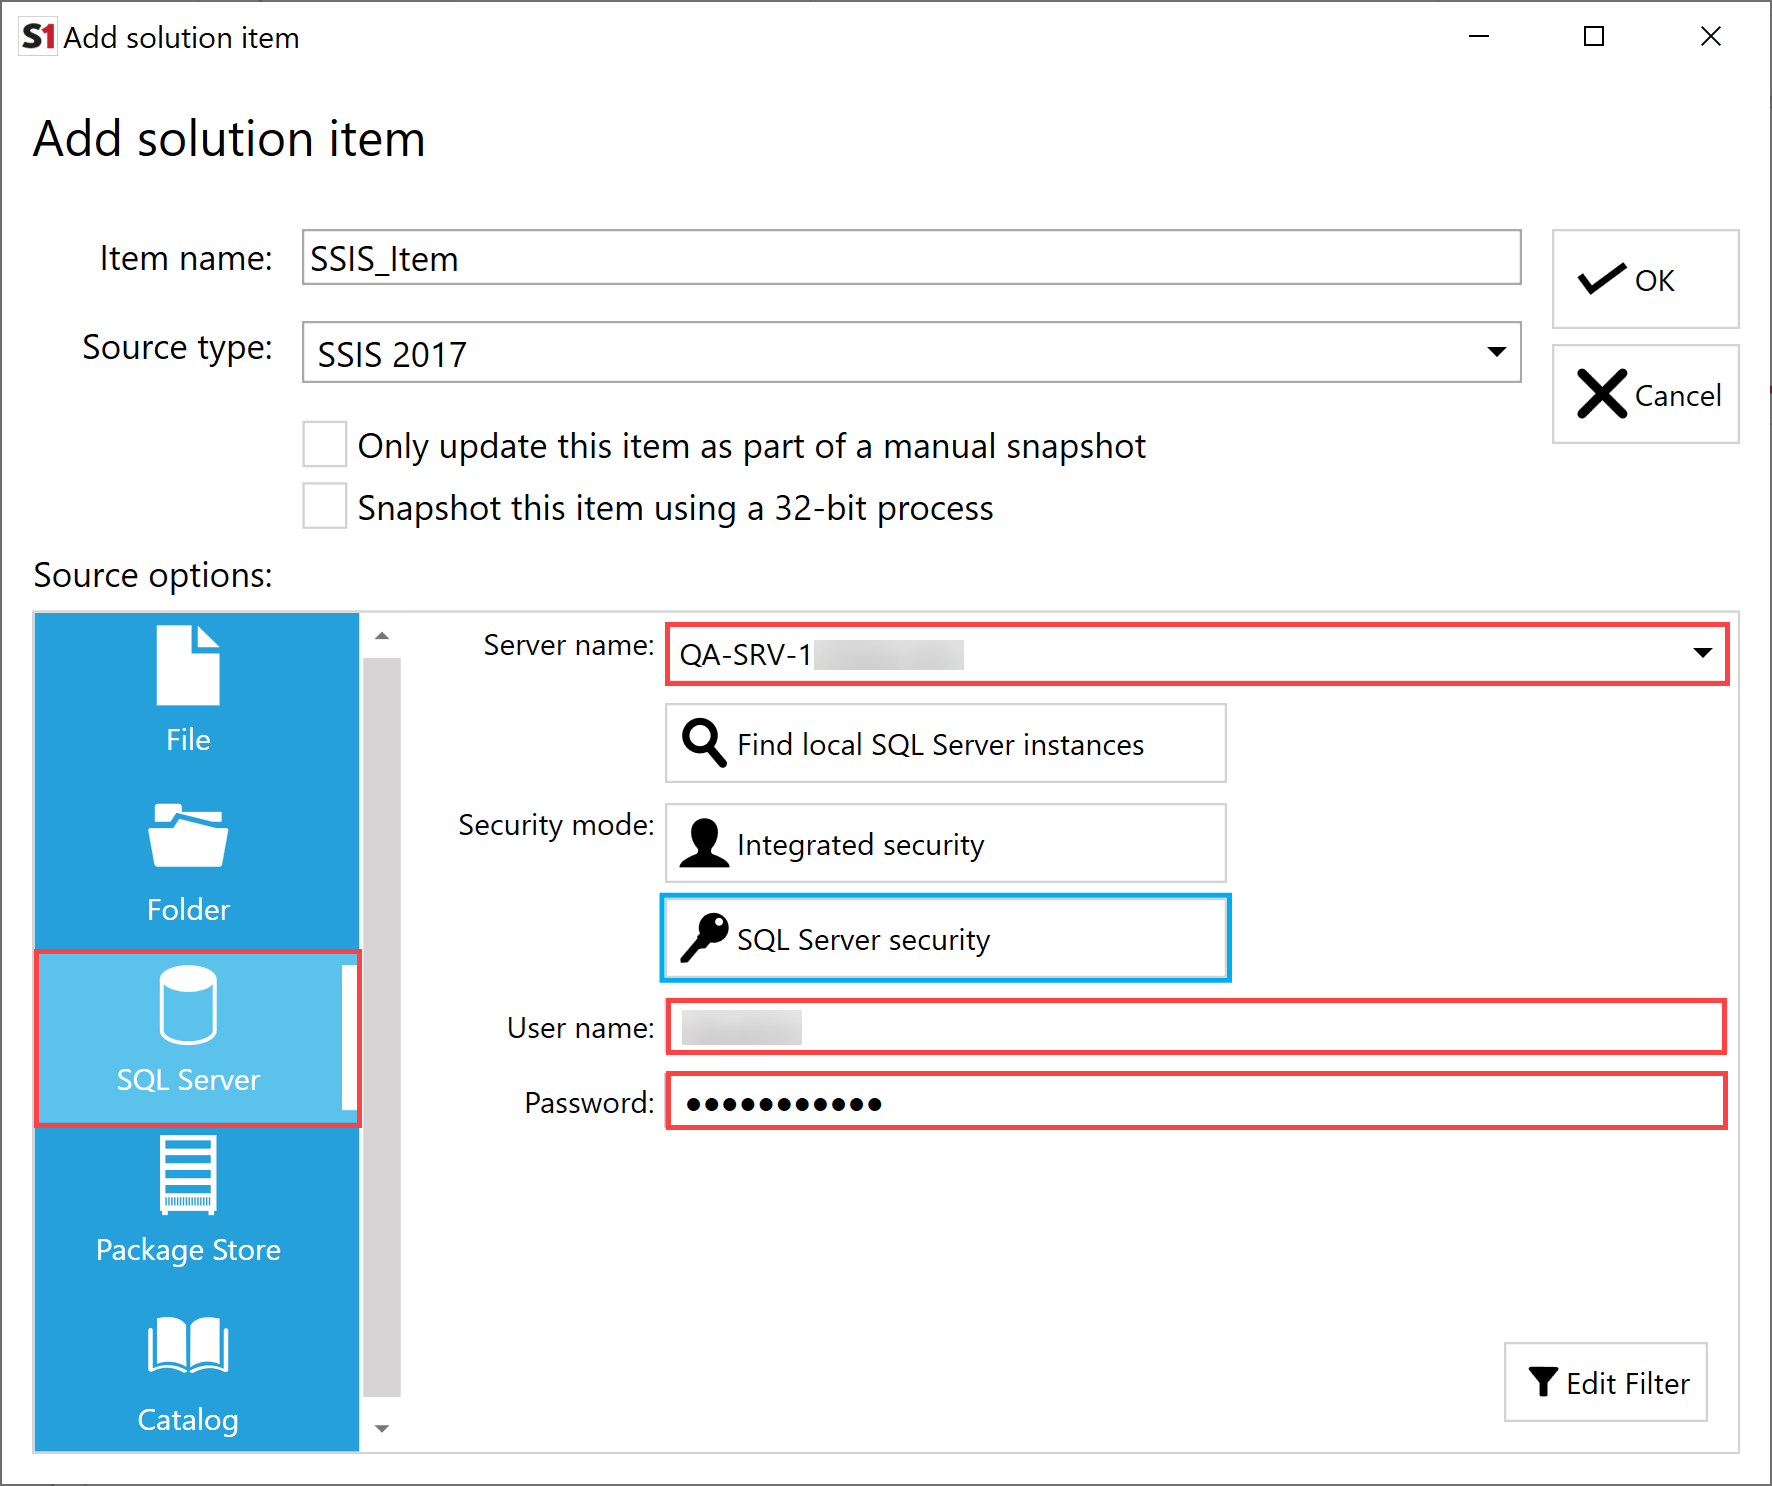 SentryOne Document Add Solution Item SSIS SQL Server